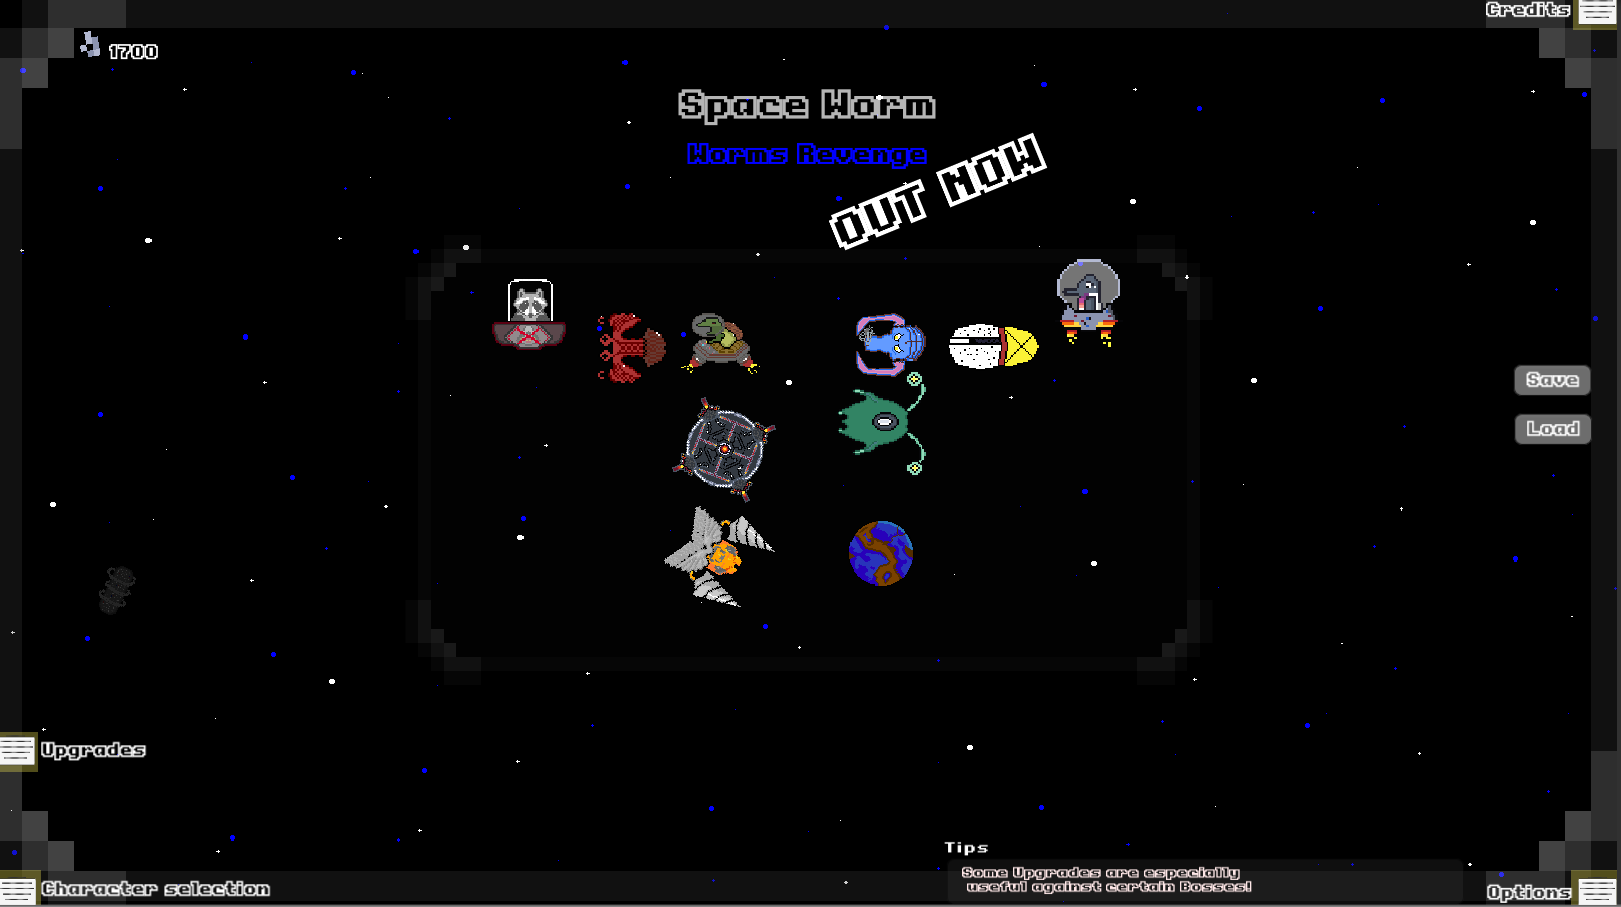 Space Worm